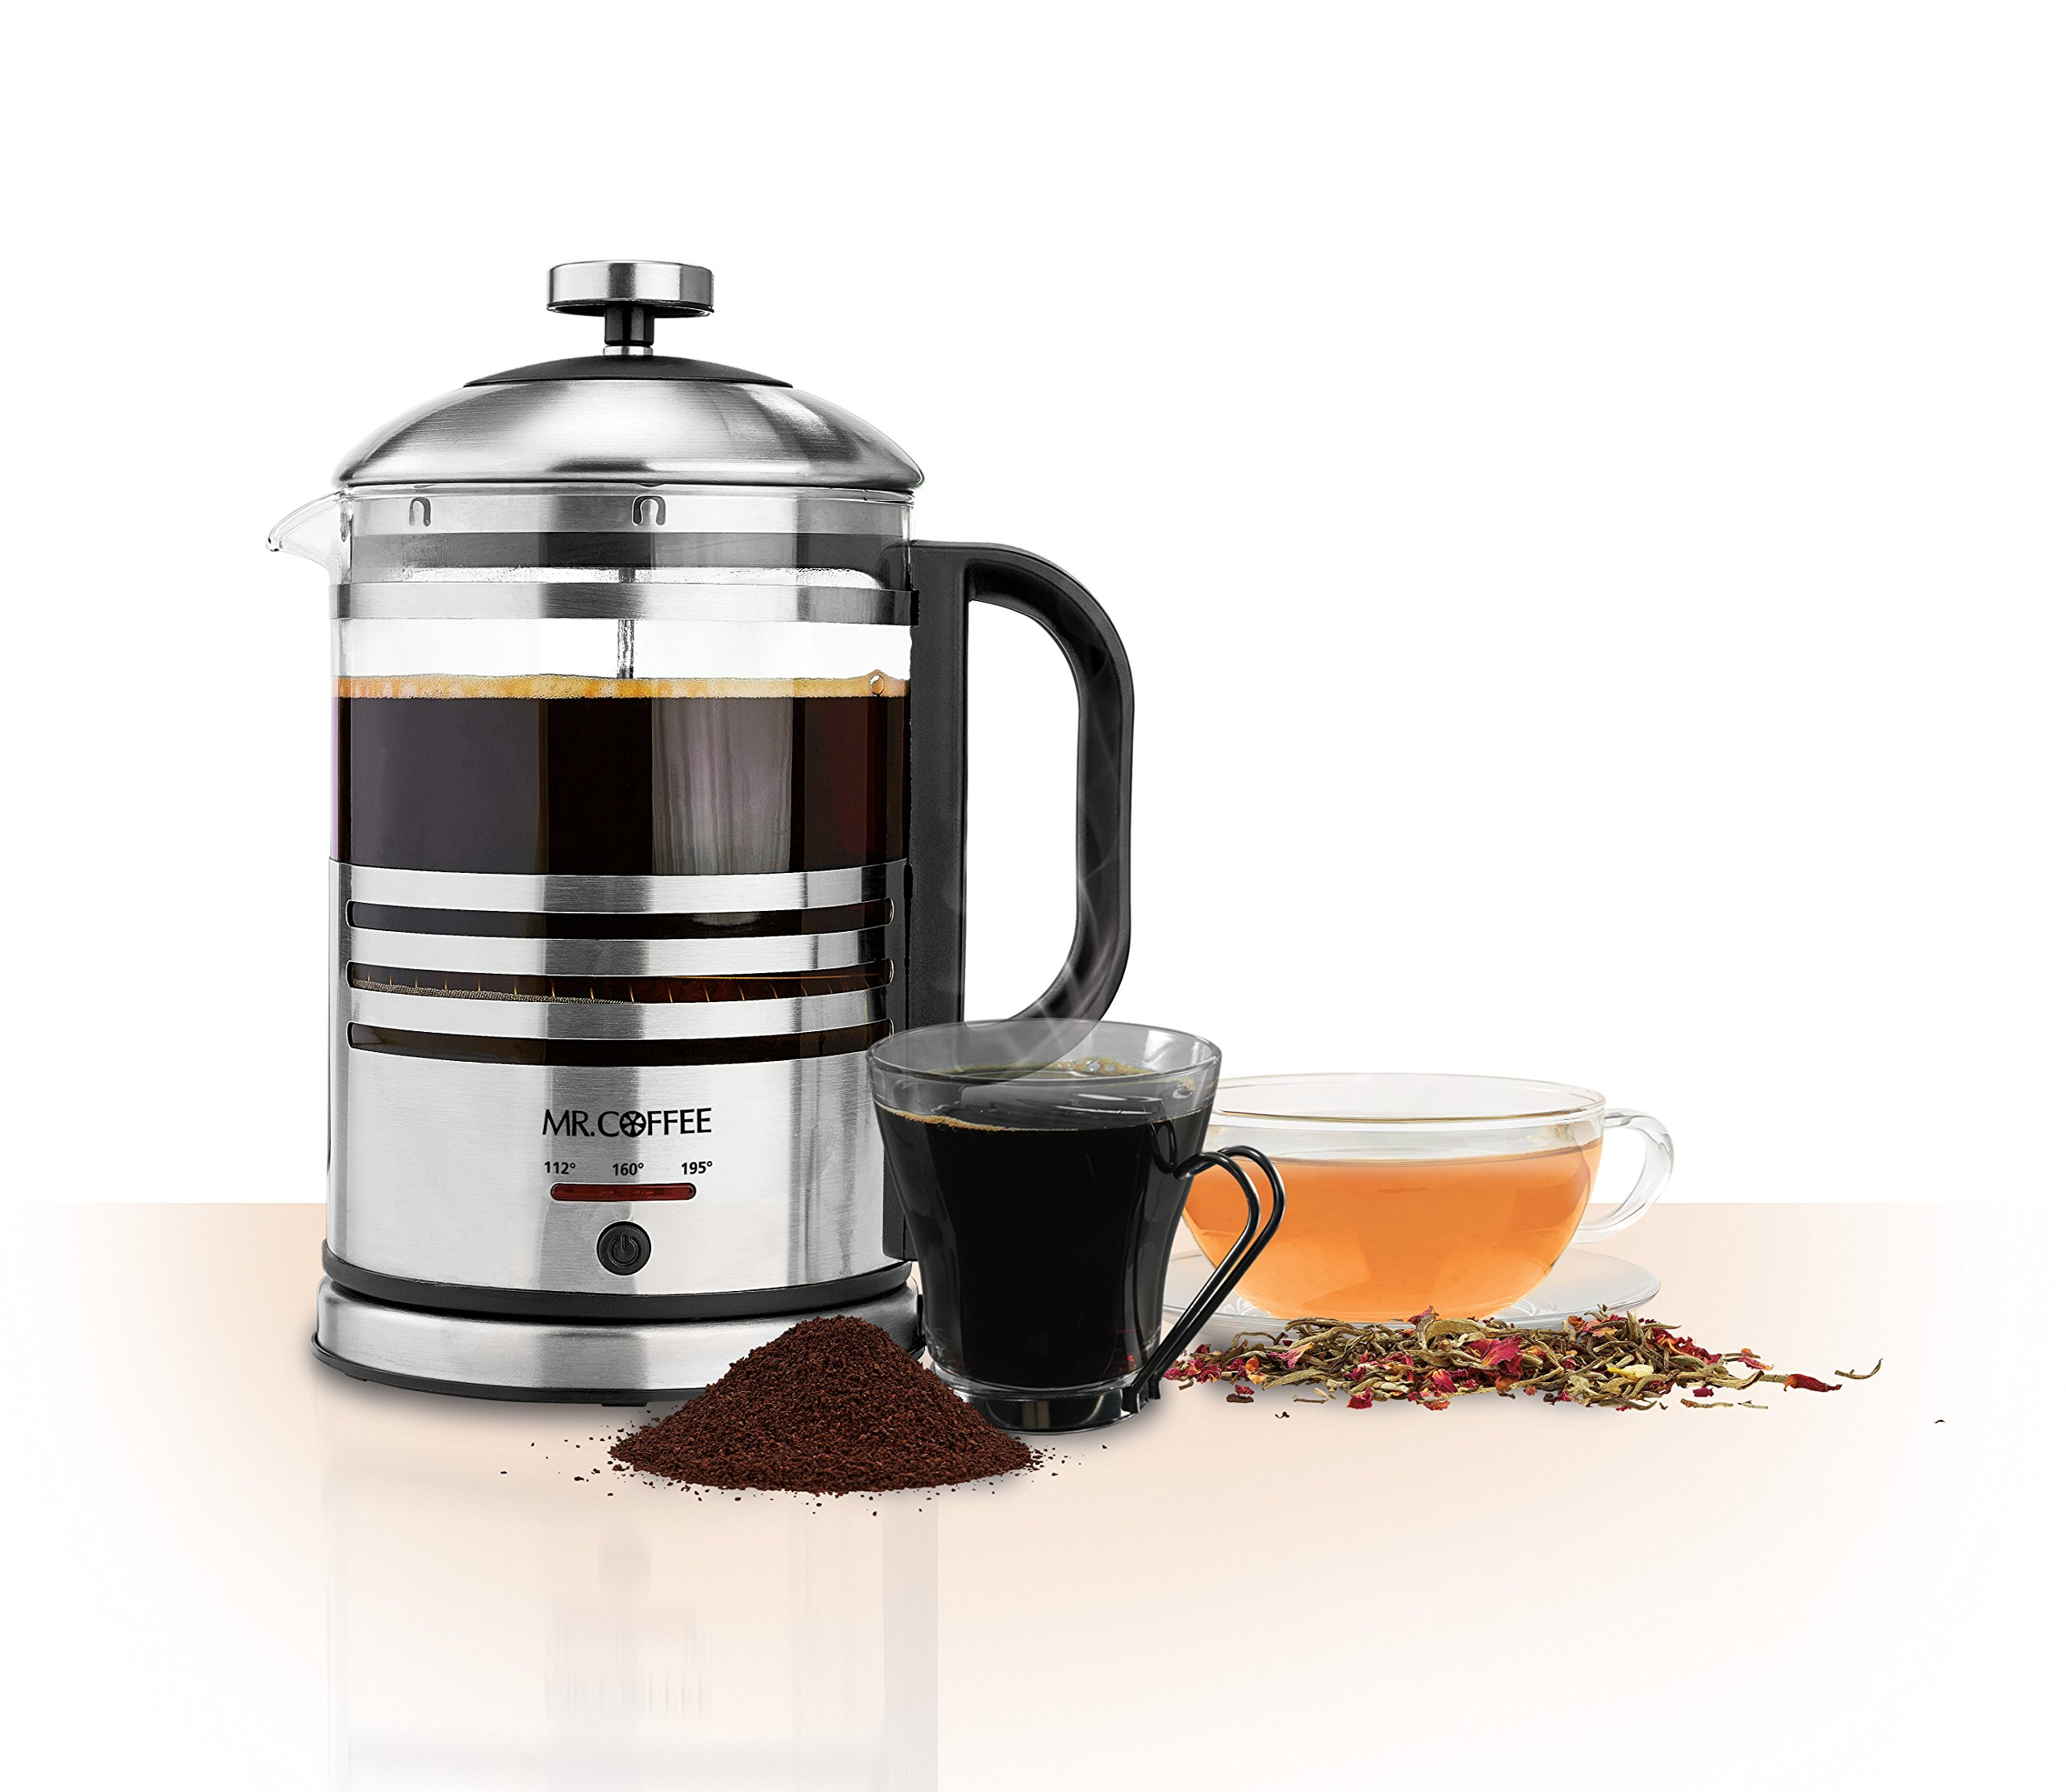 French Press Coffee Maker With Timer : Mr. Coffee Jwx Series 12-cup Programmable Coffeemaker, Red Stainless Steel - Programmable - 12 ...